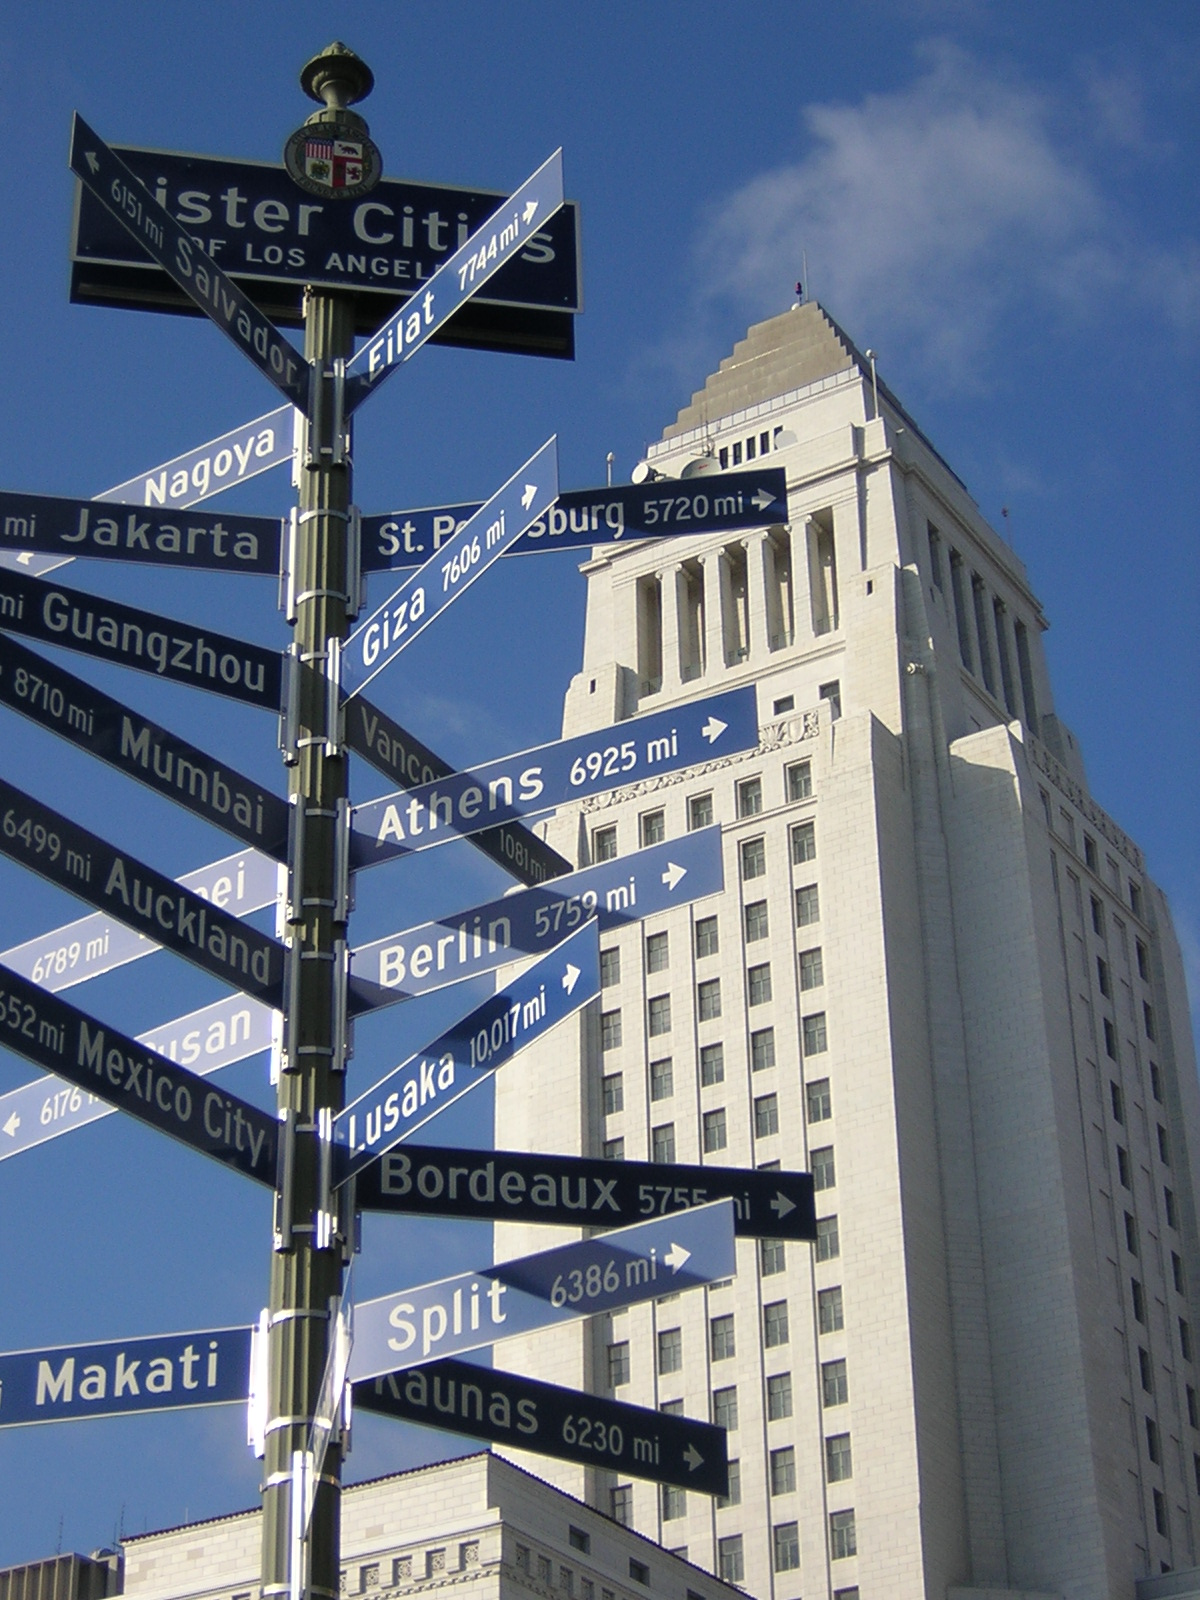 City Of Los Angeles Organizational Chart: Los Angeles Sister Cities.JPG - Wikimedia Commons,Chart